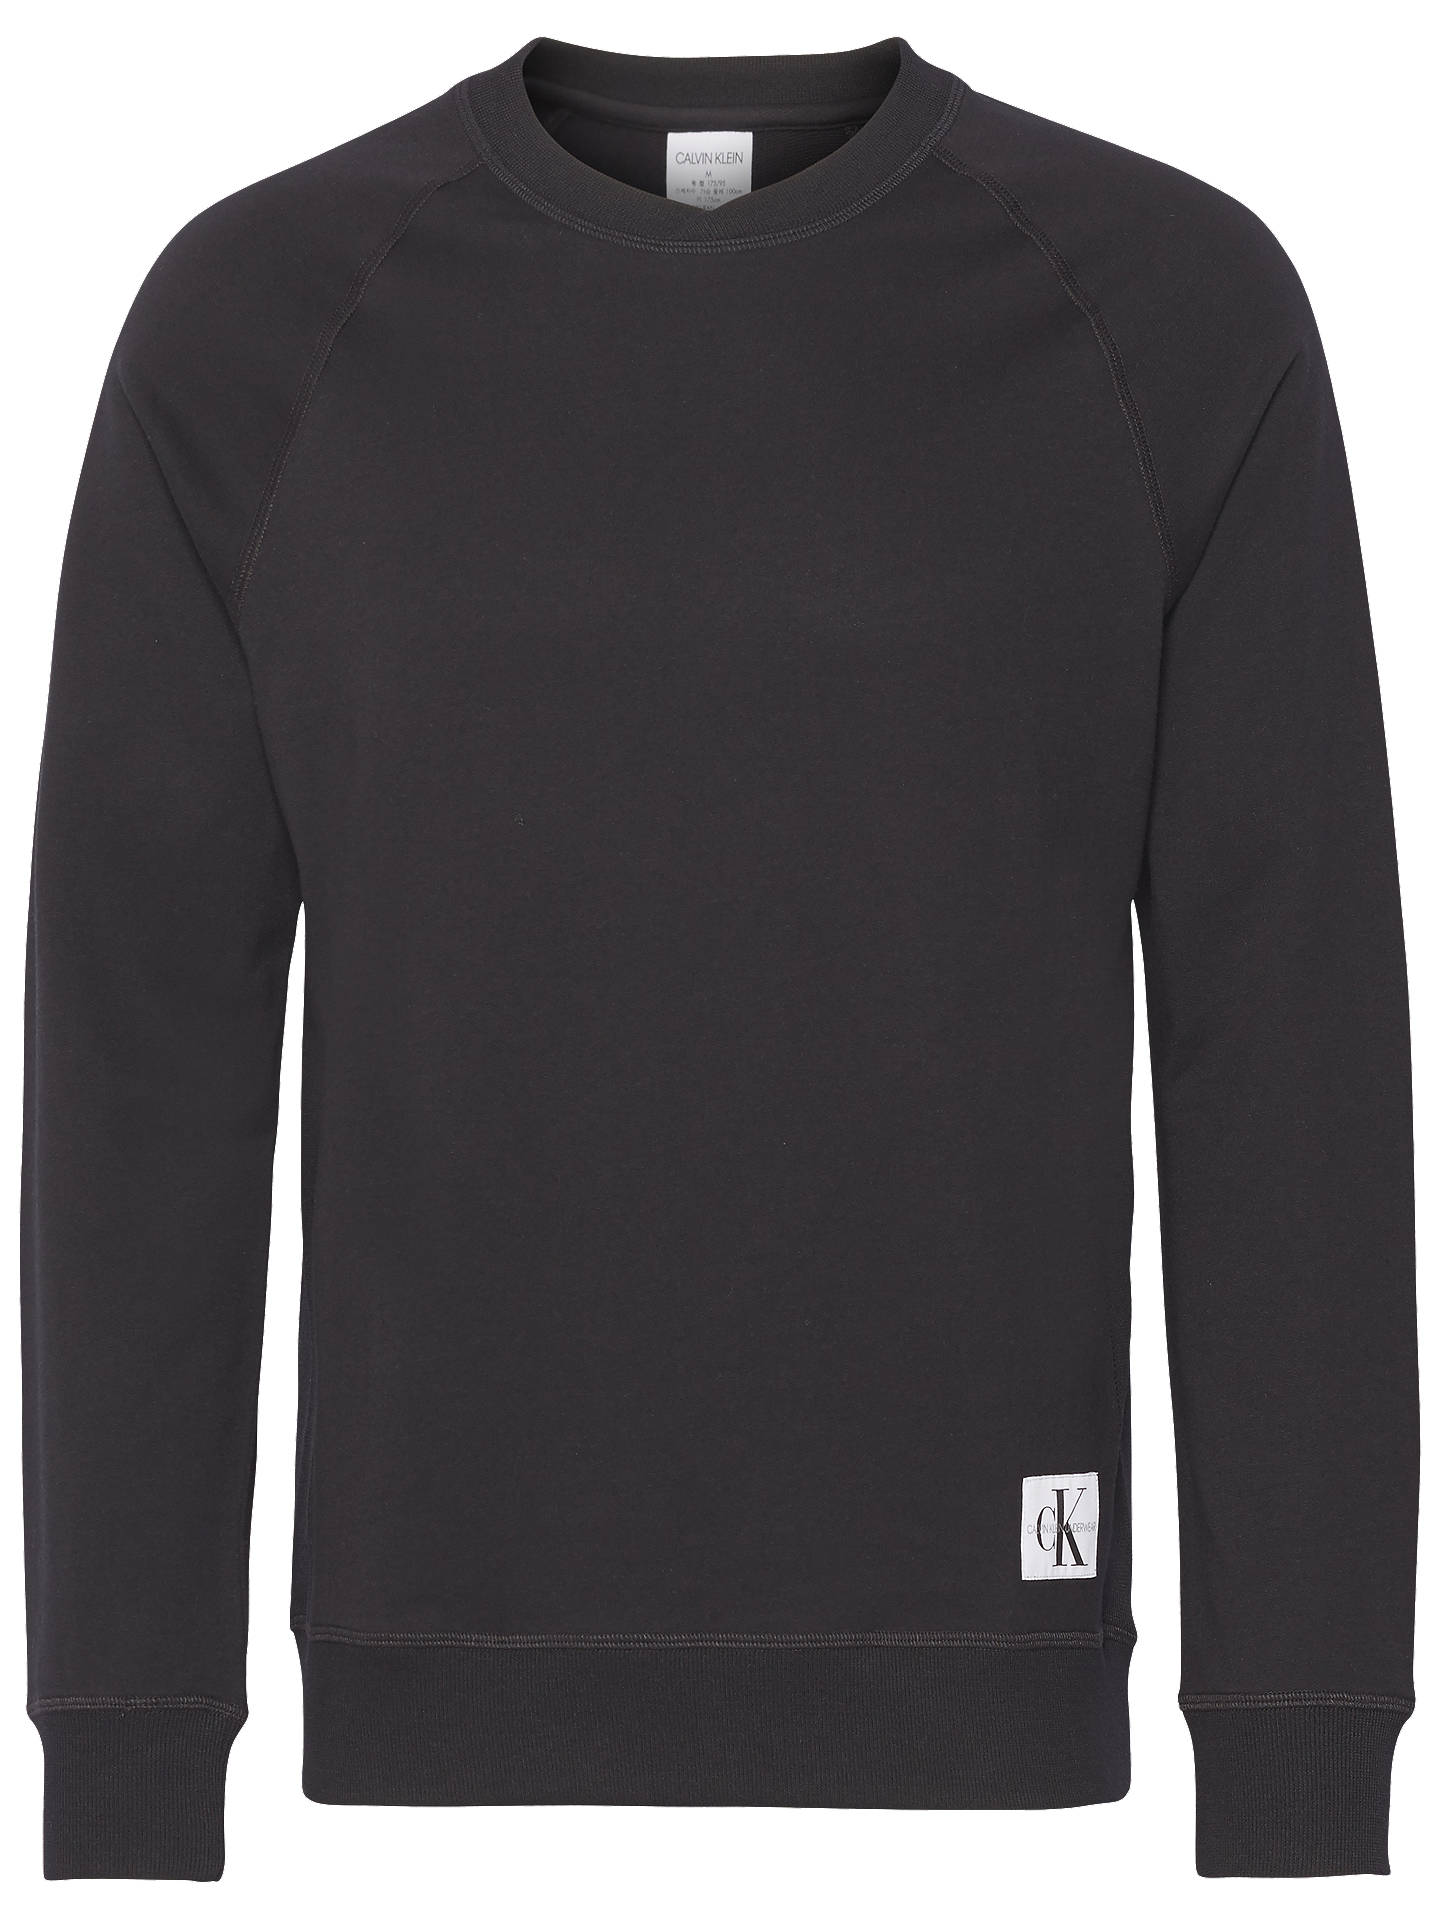 Buy Calvin Klein Lounge Sweatshirt, Black, XL Online at johnlewis.com